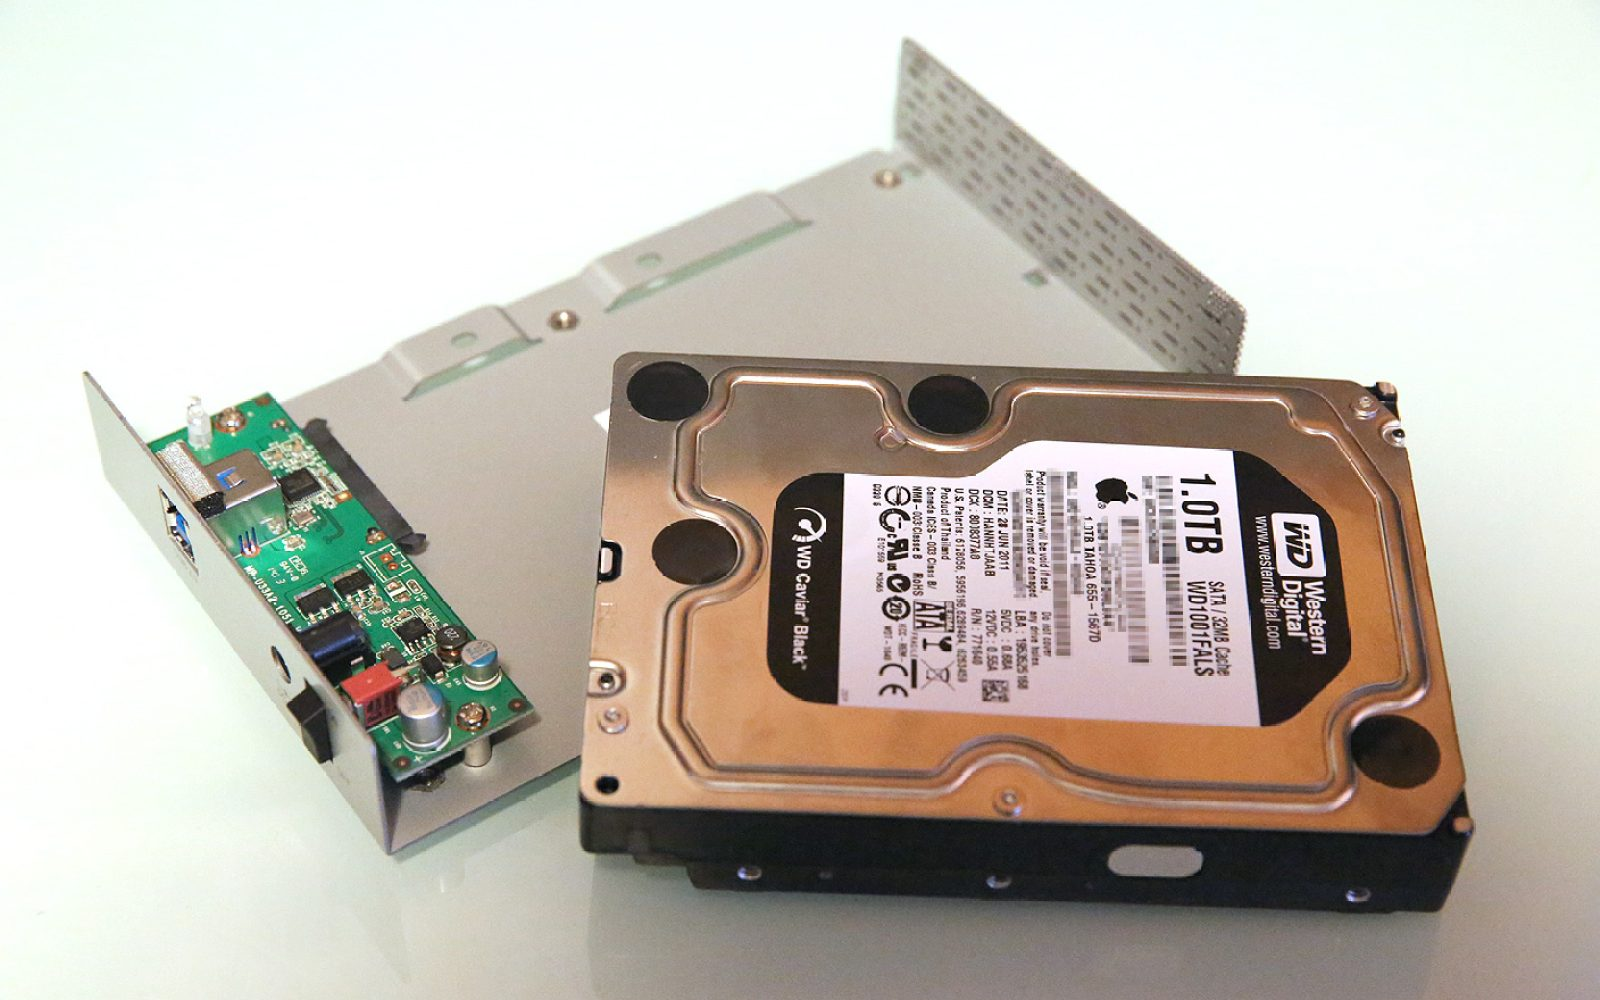 How To Reclaim Your Macs Old Hard Drive Or Build A New One With An Sata Usb Wiring Diagram External Enclosure